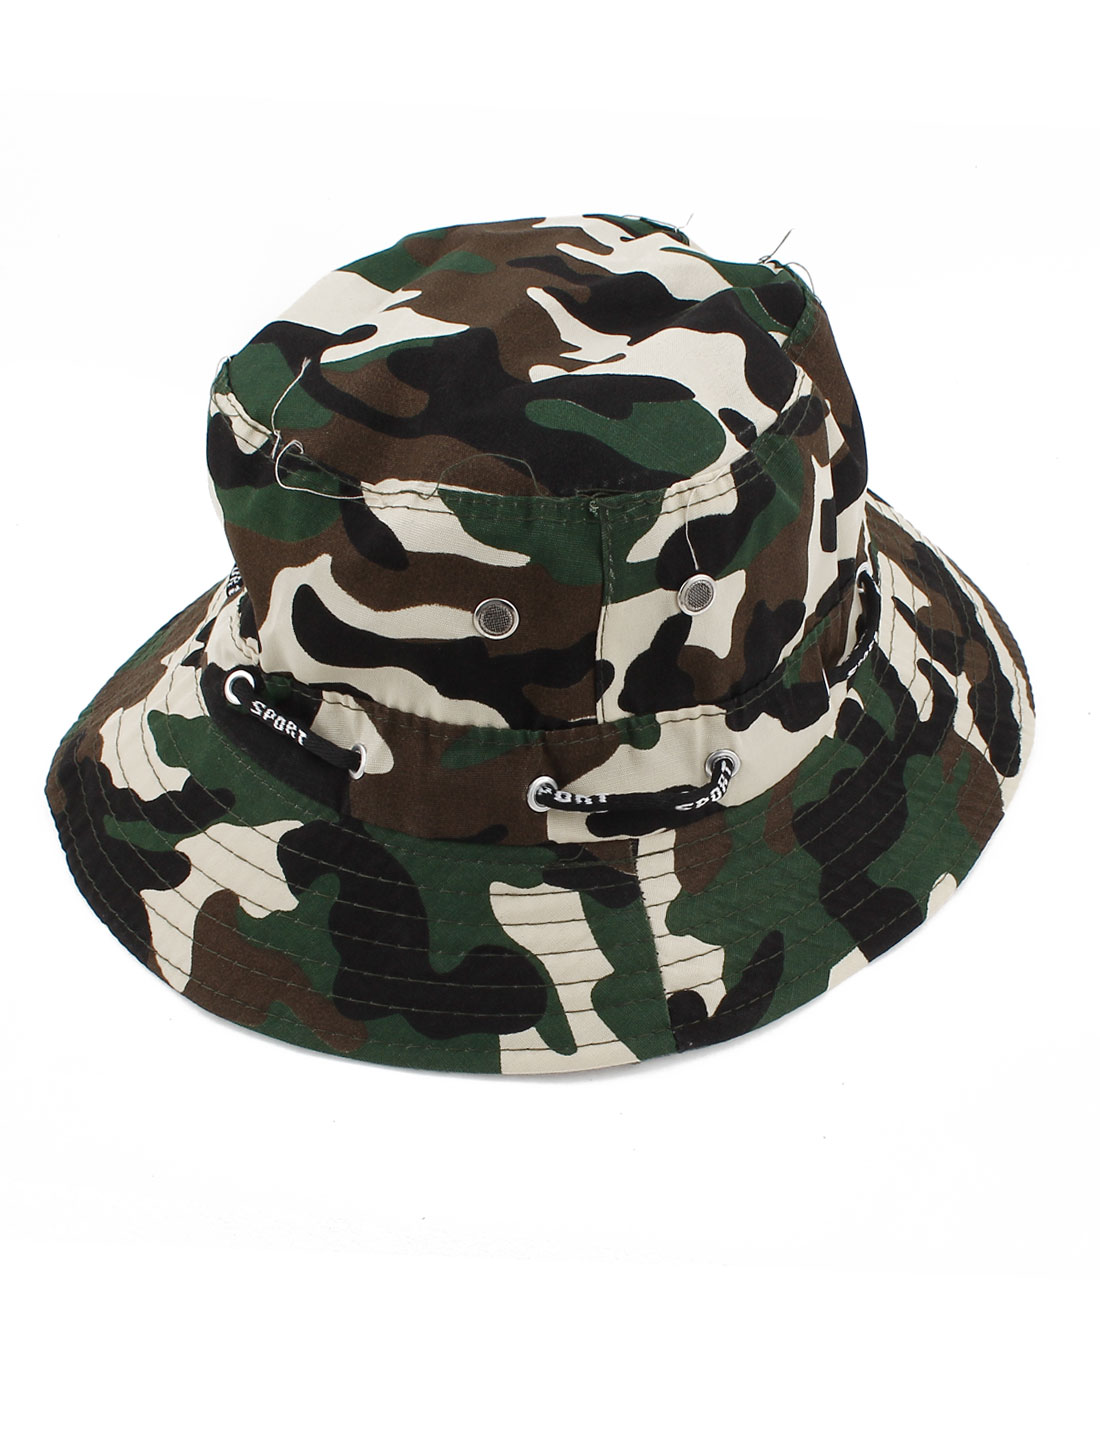 Lady Man Camouflage Print Stitch Decoration Bucket Cap Hat Arym Green